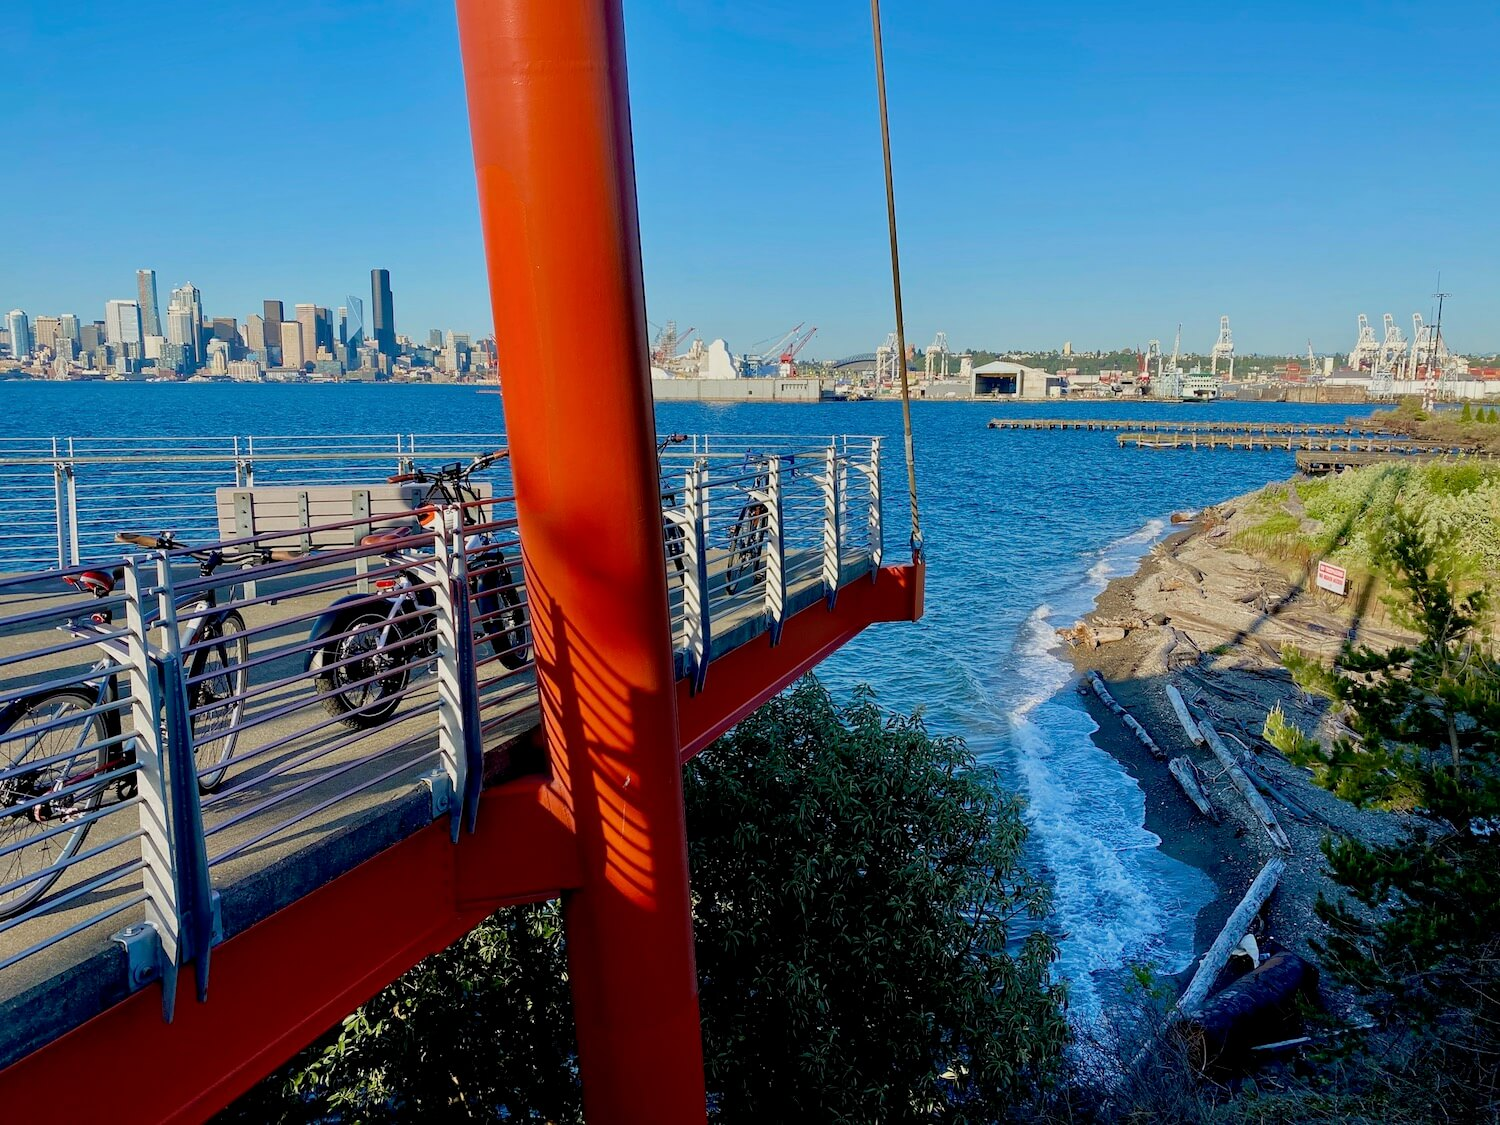 A view from high up in the observation tower at Joe Block Park in West Seattle. The structure is supported by giant orangish red tubes of metal and thick cables. The platform offers sweeping Lewis of the downtown skyline of Seattle, including the tall, black colored Columbia Center in the background. Closer to the tower there are foamy white waves rolling onto a small spit of beach with pieces of driftwood, pebbly sand and low cover bushes. The industrial area of Seattle is directly behind the beach scene.